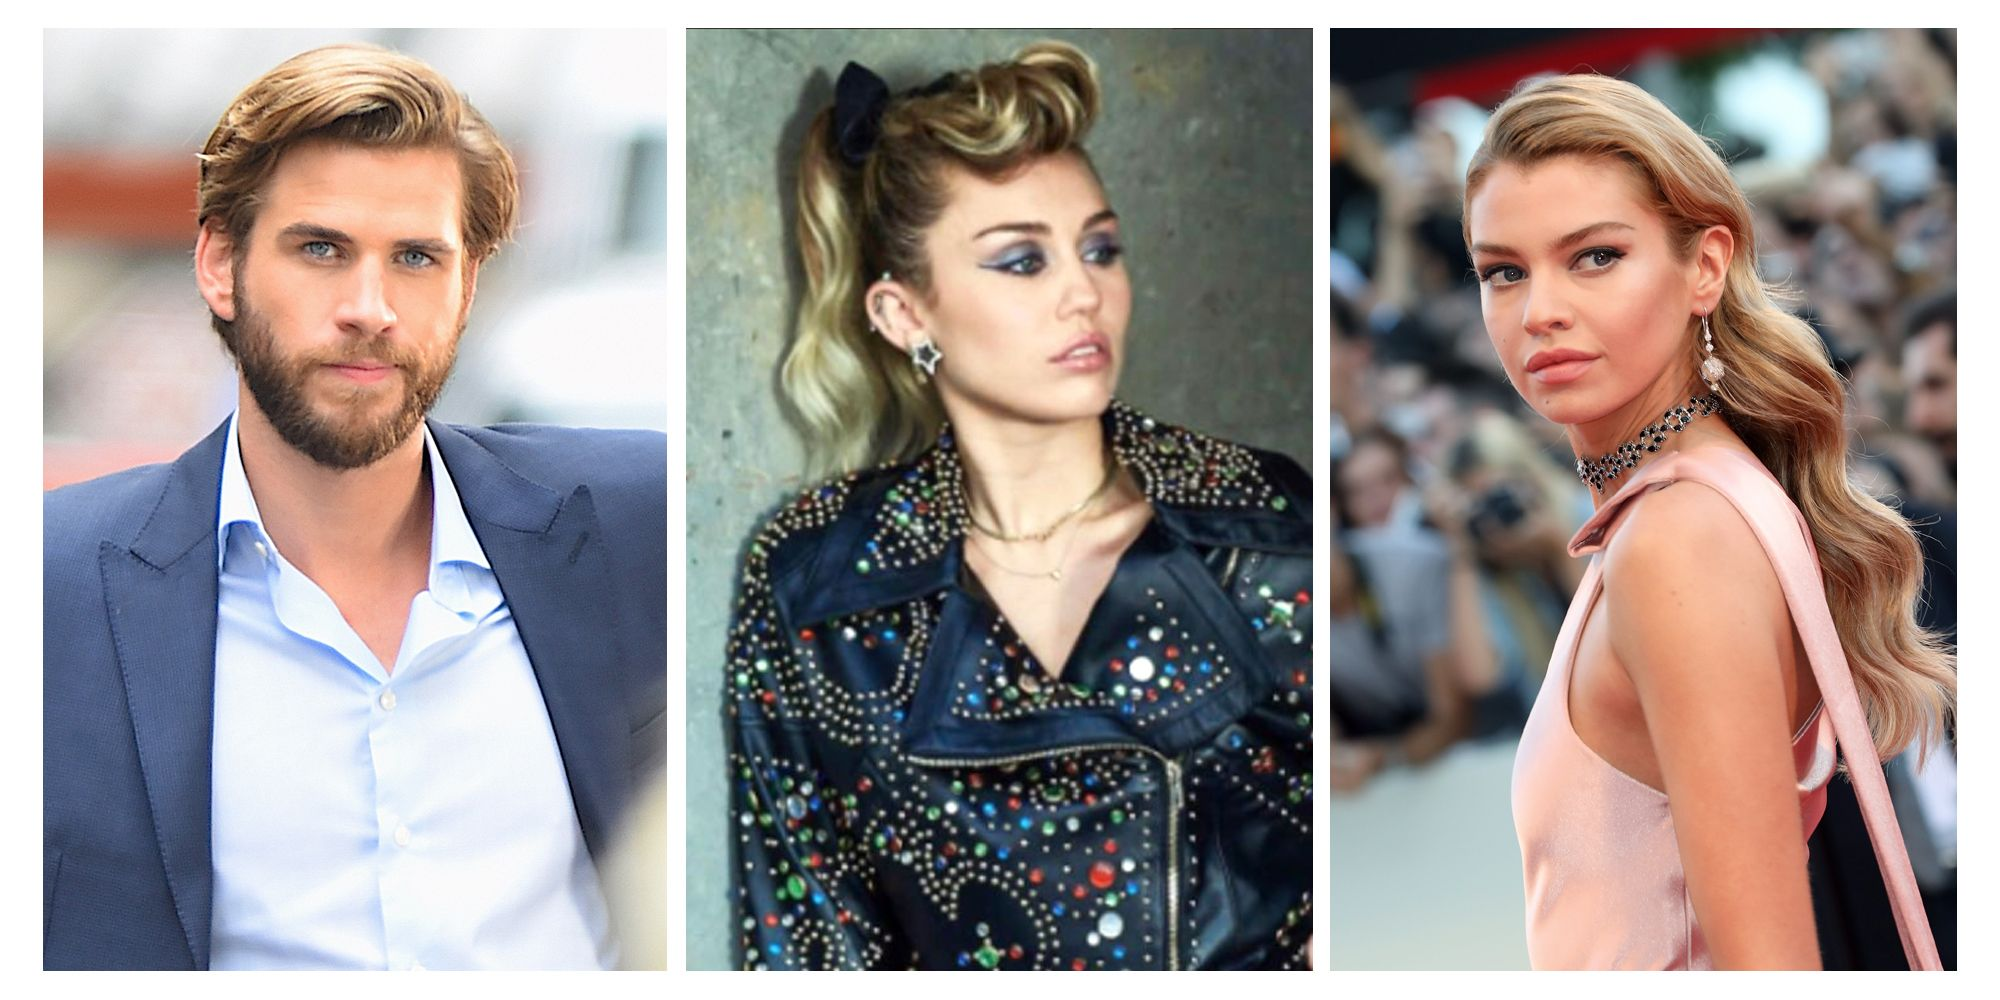 Who is miley cyrus dating without drama